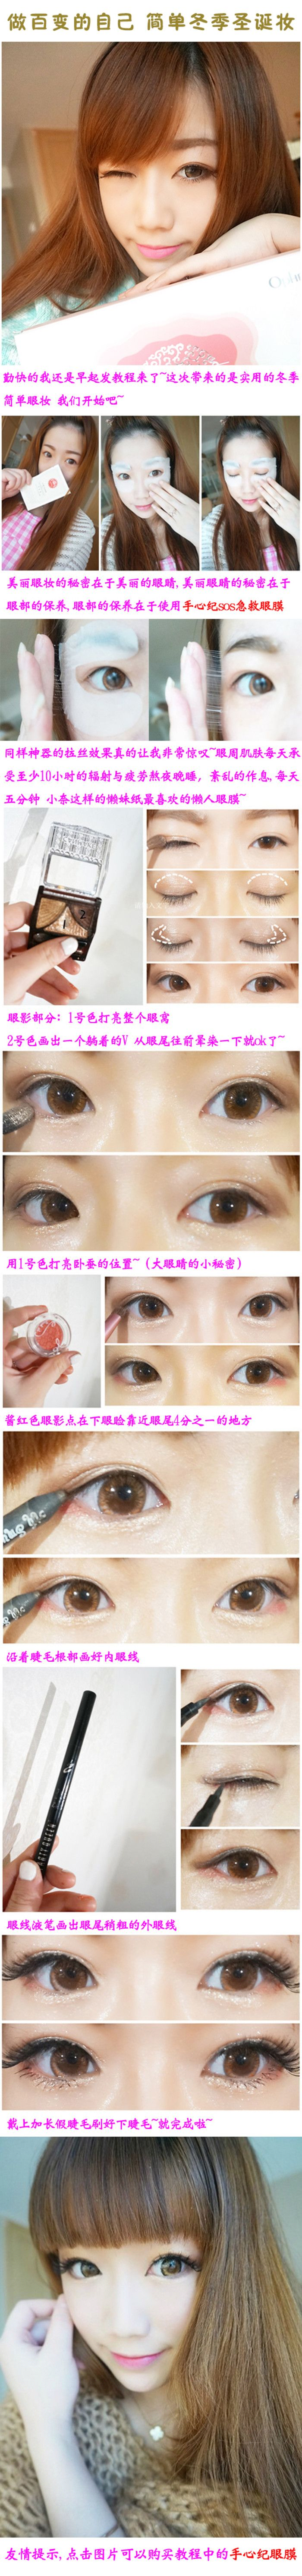 Asian makeup tutorial, a pink undereye highlight is super trendy right now     ⭐️⭐️   #JoinNerium #DebbieKrug #NeriumKorea #NeriumAsia ⭐www.SkincareInKorea.info️      www.AsianSkincare.Rocks  ⭐️